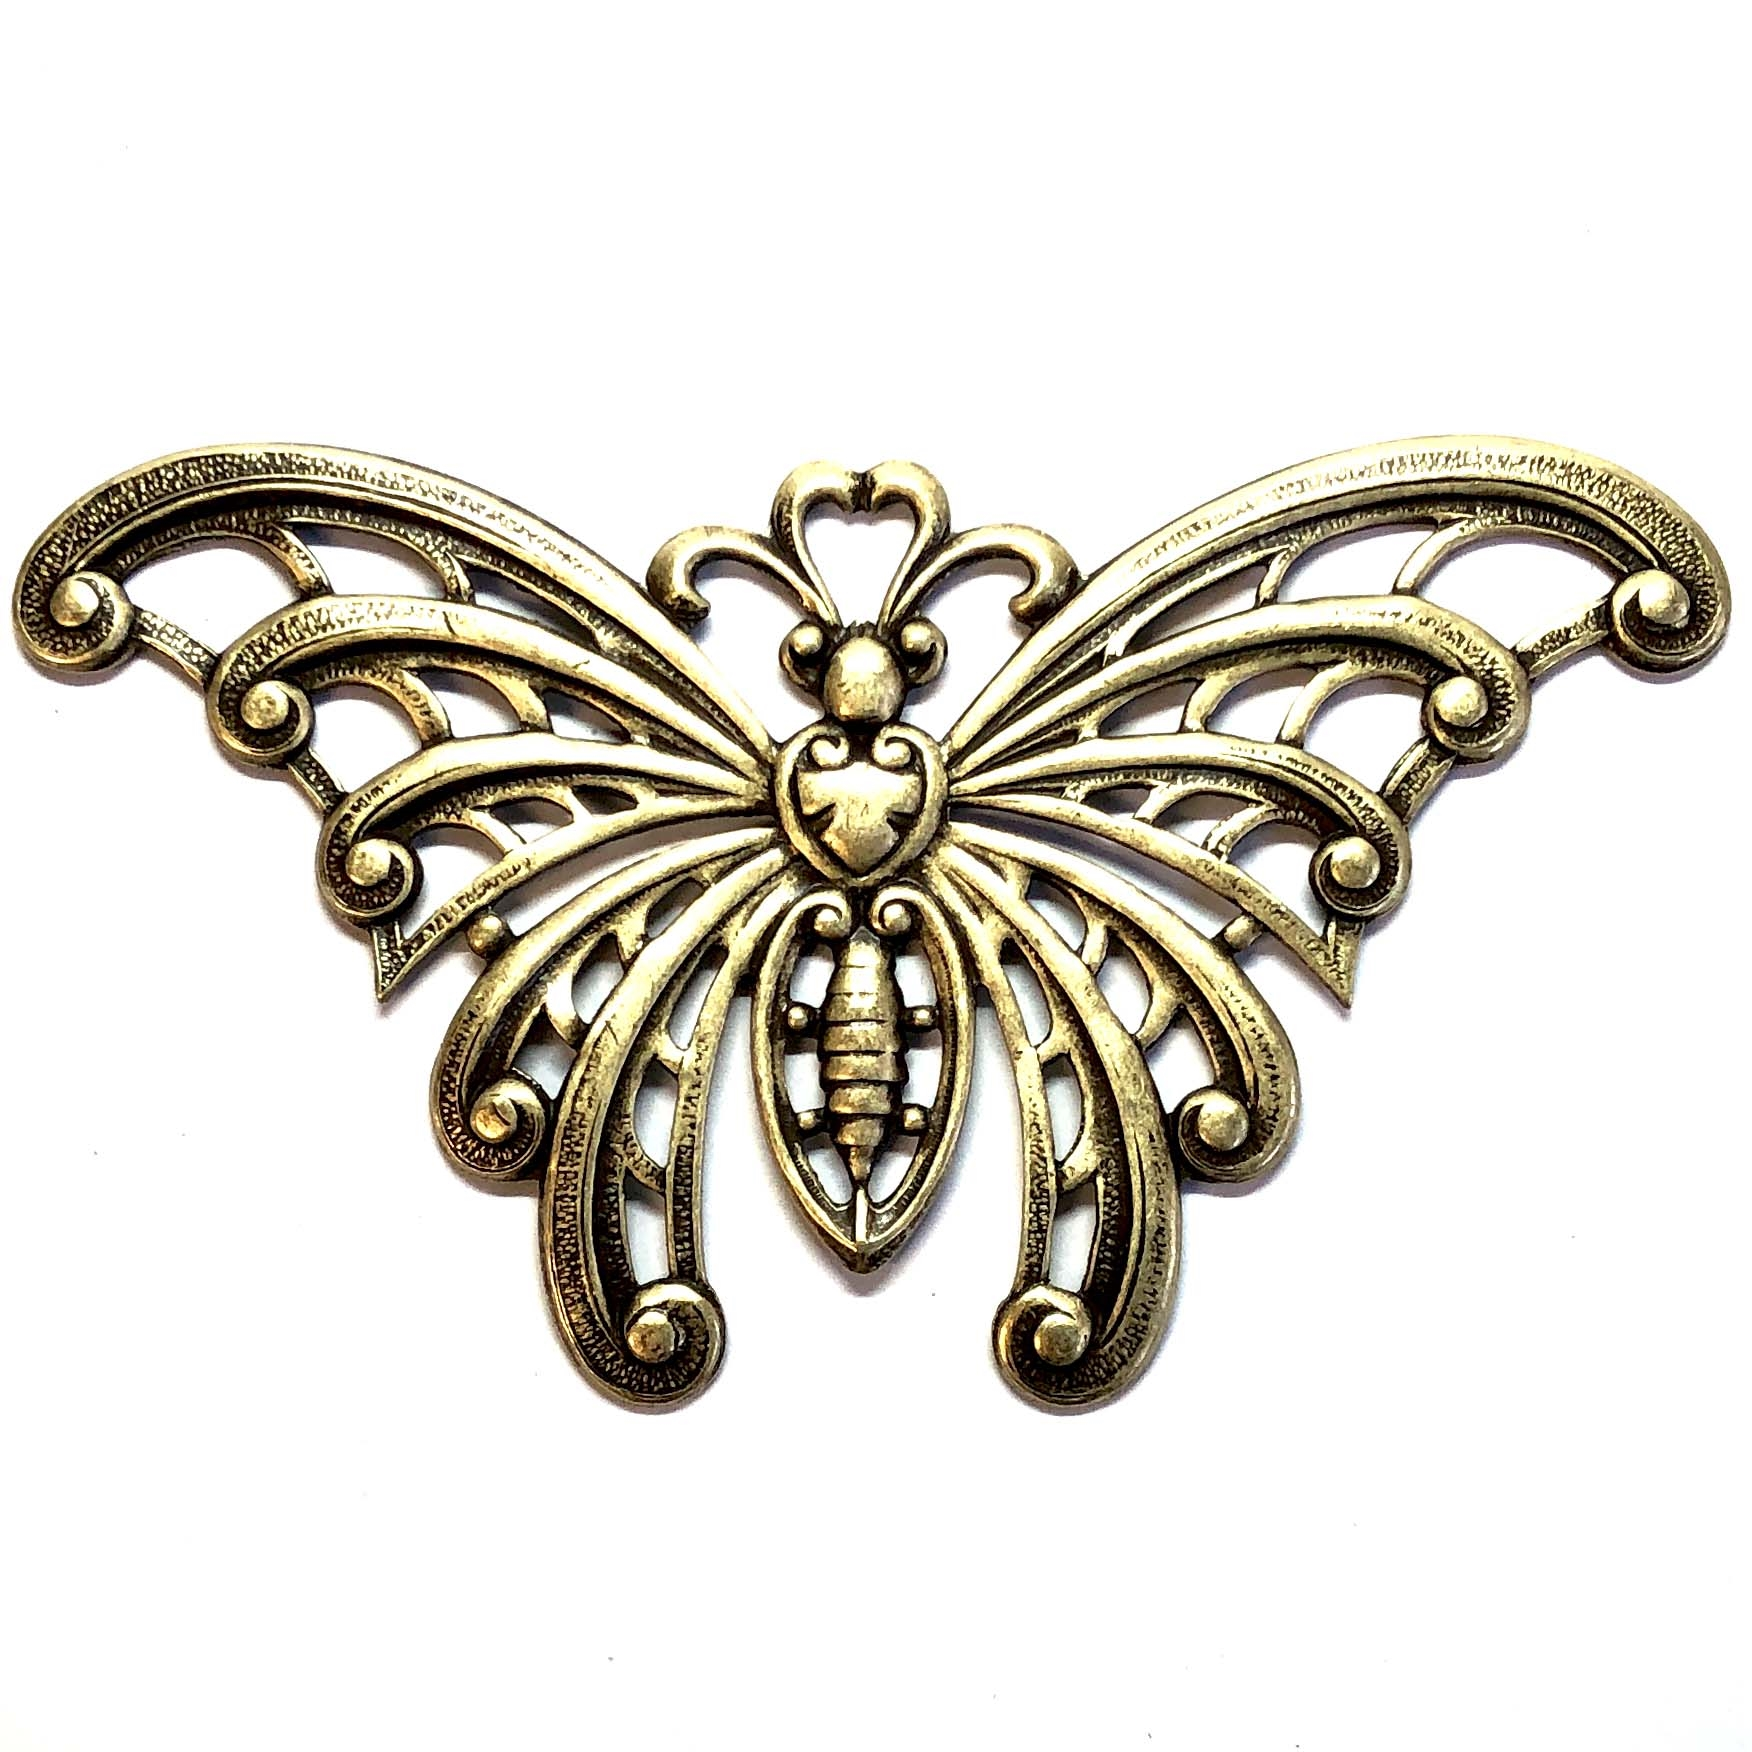 brass butterflies, jewelry making, antique brass, 09398, brass ox, jewelry making supplies, vintage jewelry supplies, US made, nickel free jewelry supplies, bsueboutiques, black antiquing